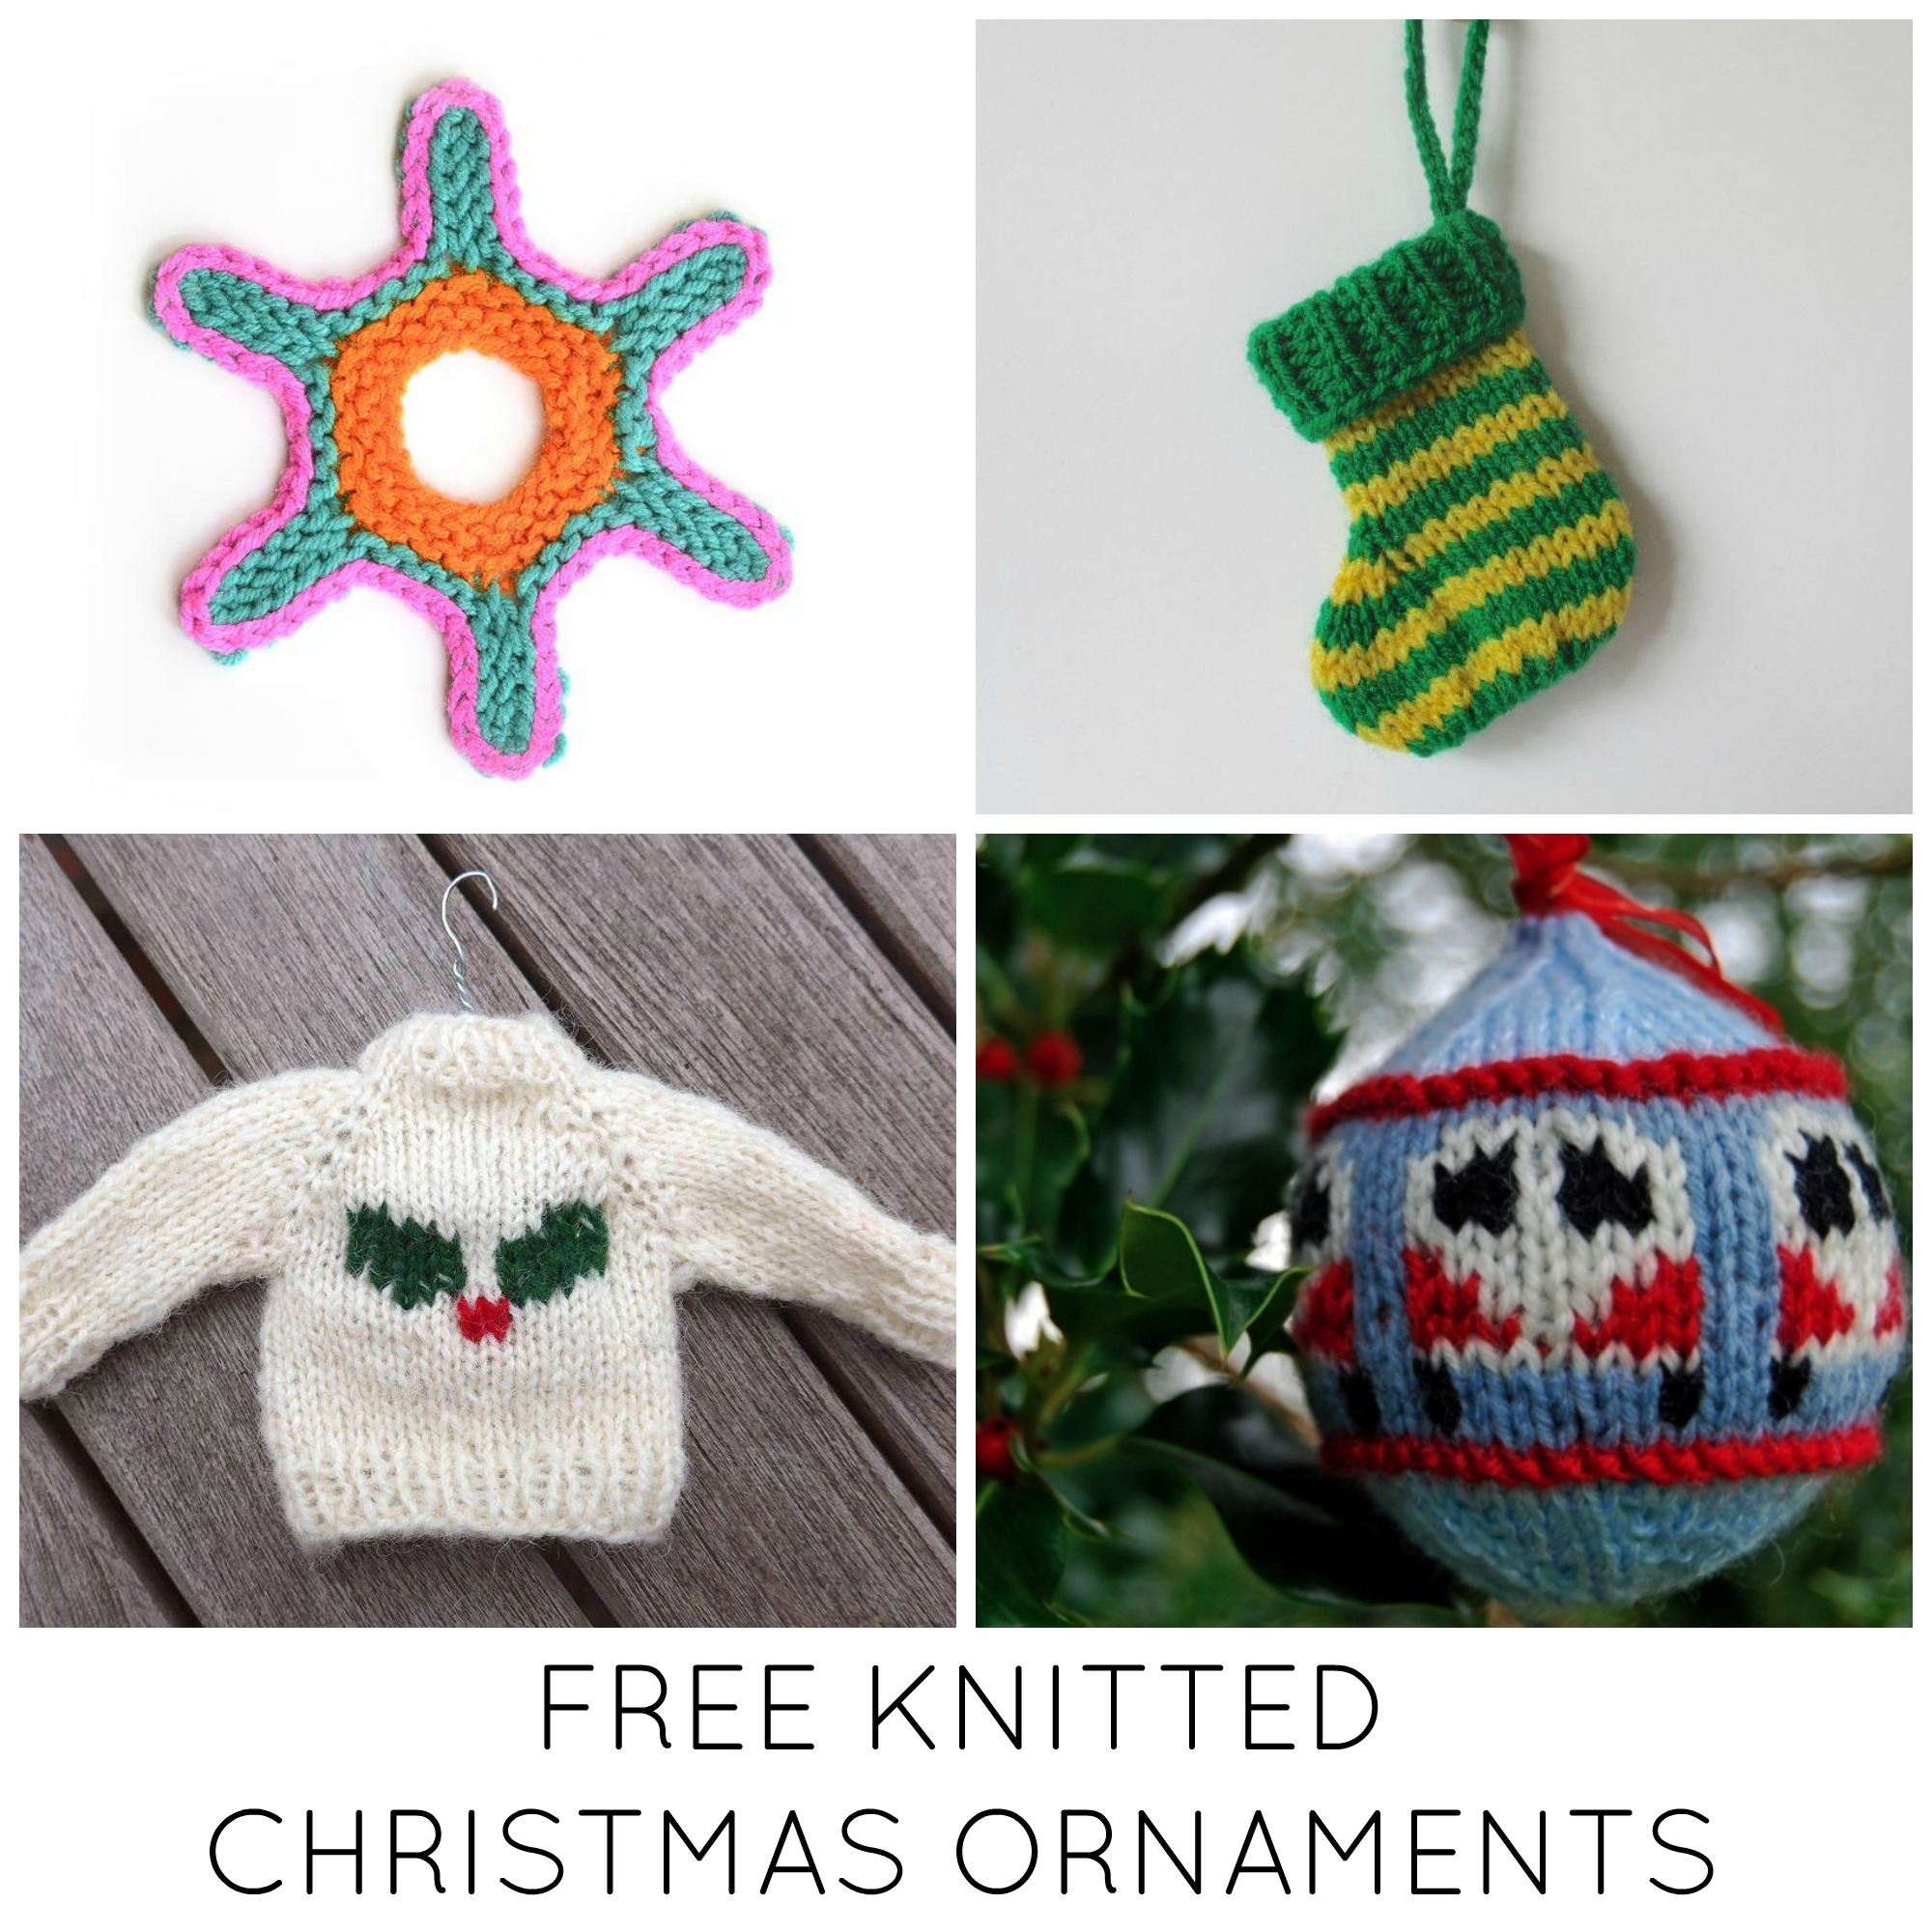 Free Knitted Christmas Tree Decorations Patterns 11 Festive Free Knitted Christmas Ornaments